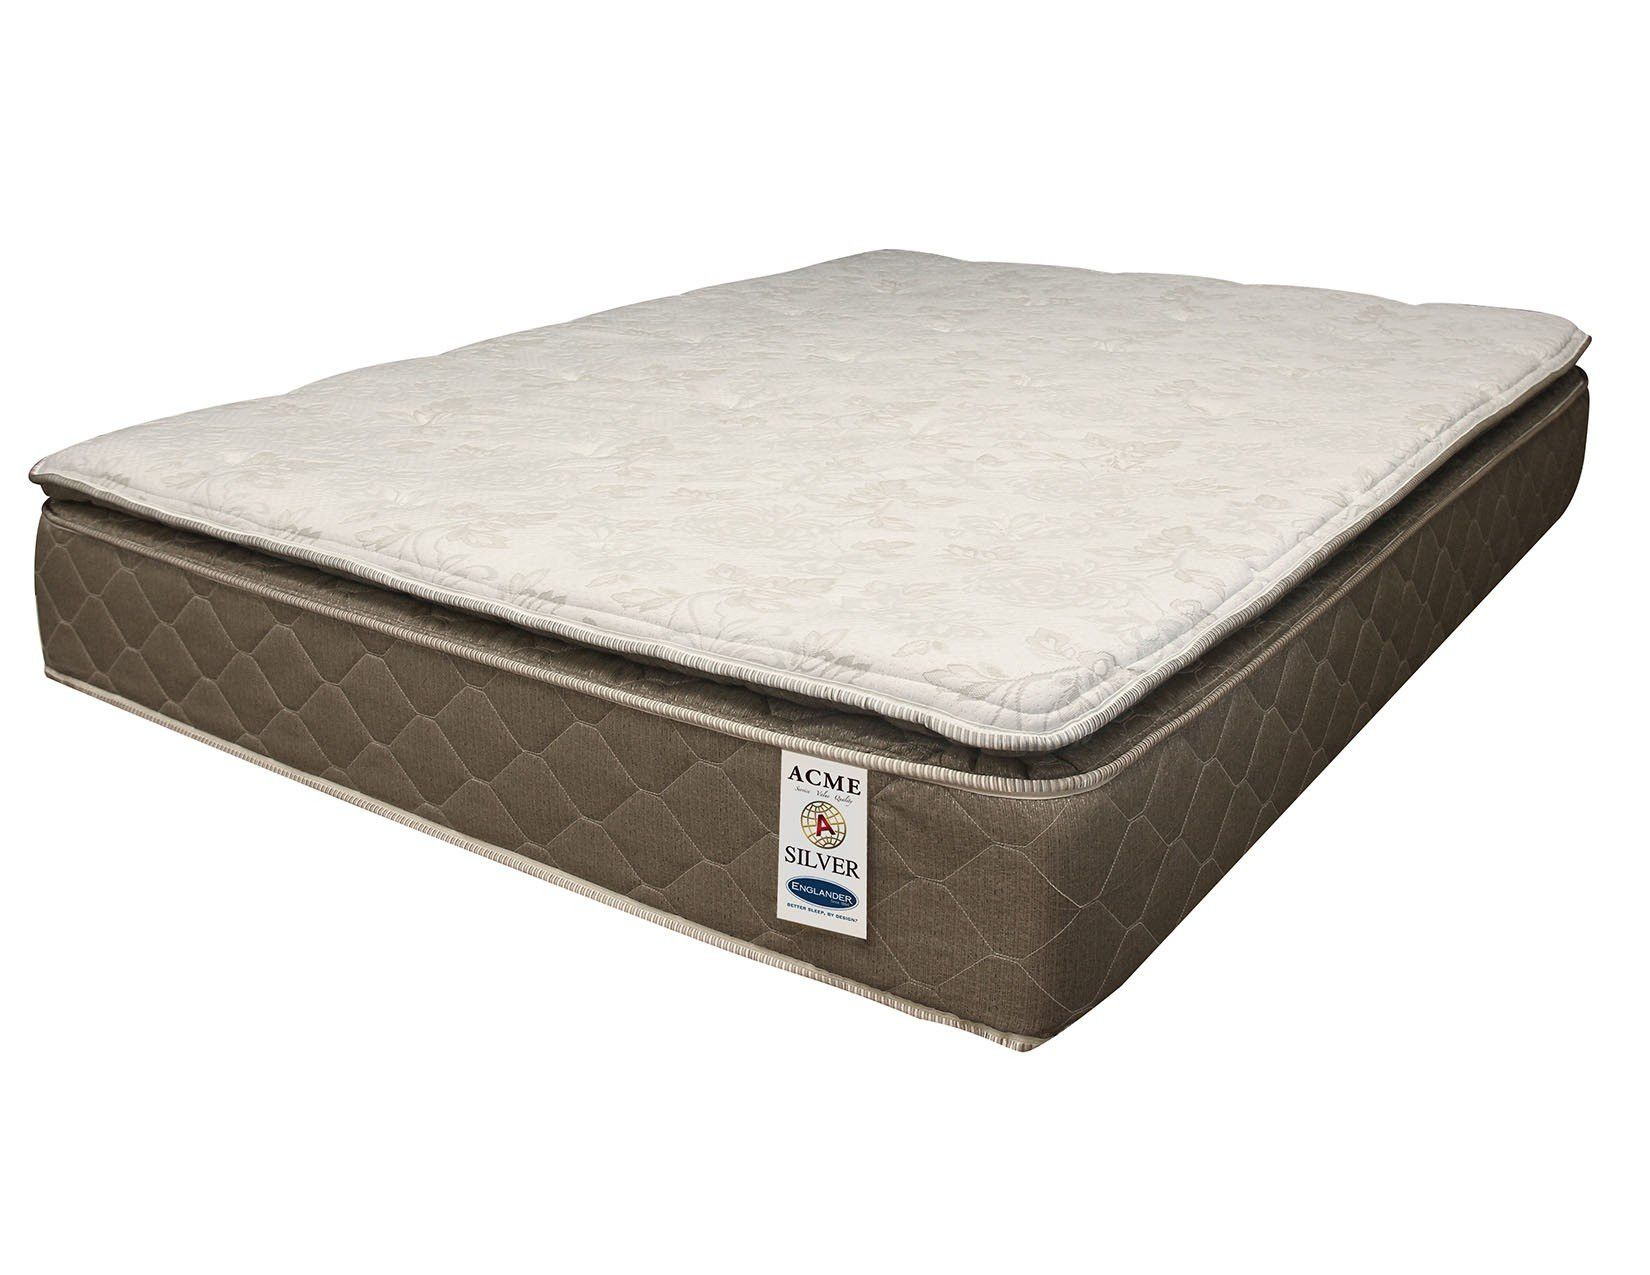 englander cal king size mattress 29133 600 features englander